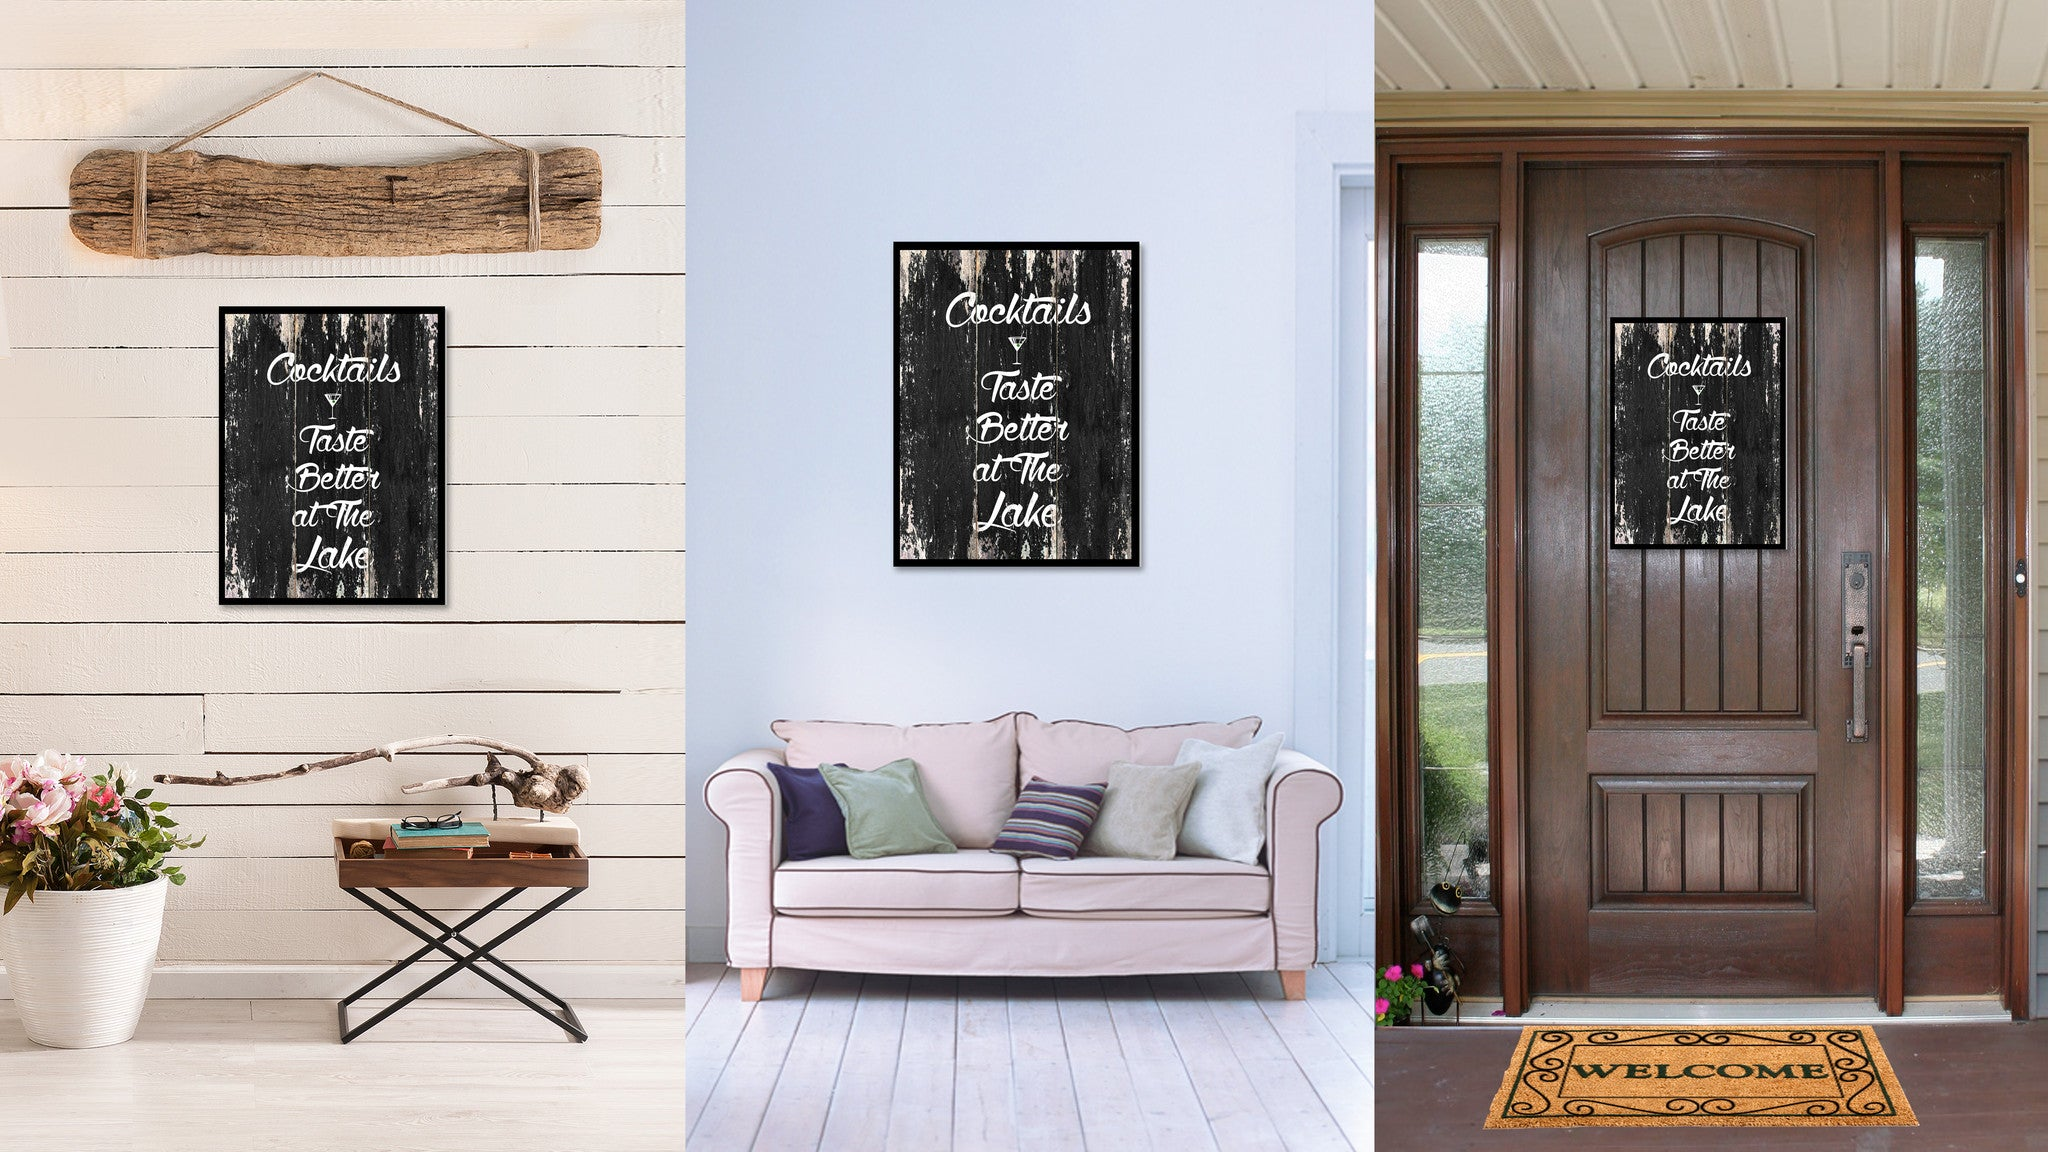 Cocktails taste better at the lake Quote Saying Canvas Print with Picture Frame Home Decor Wall Art